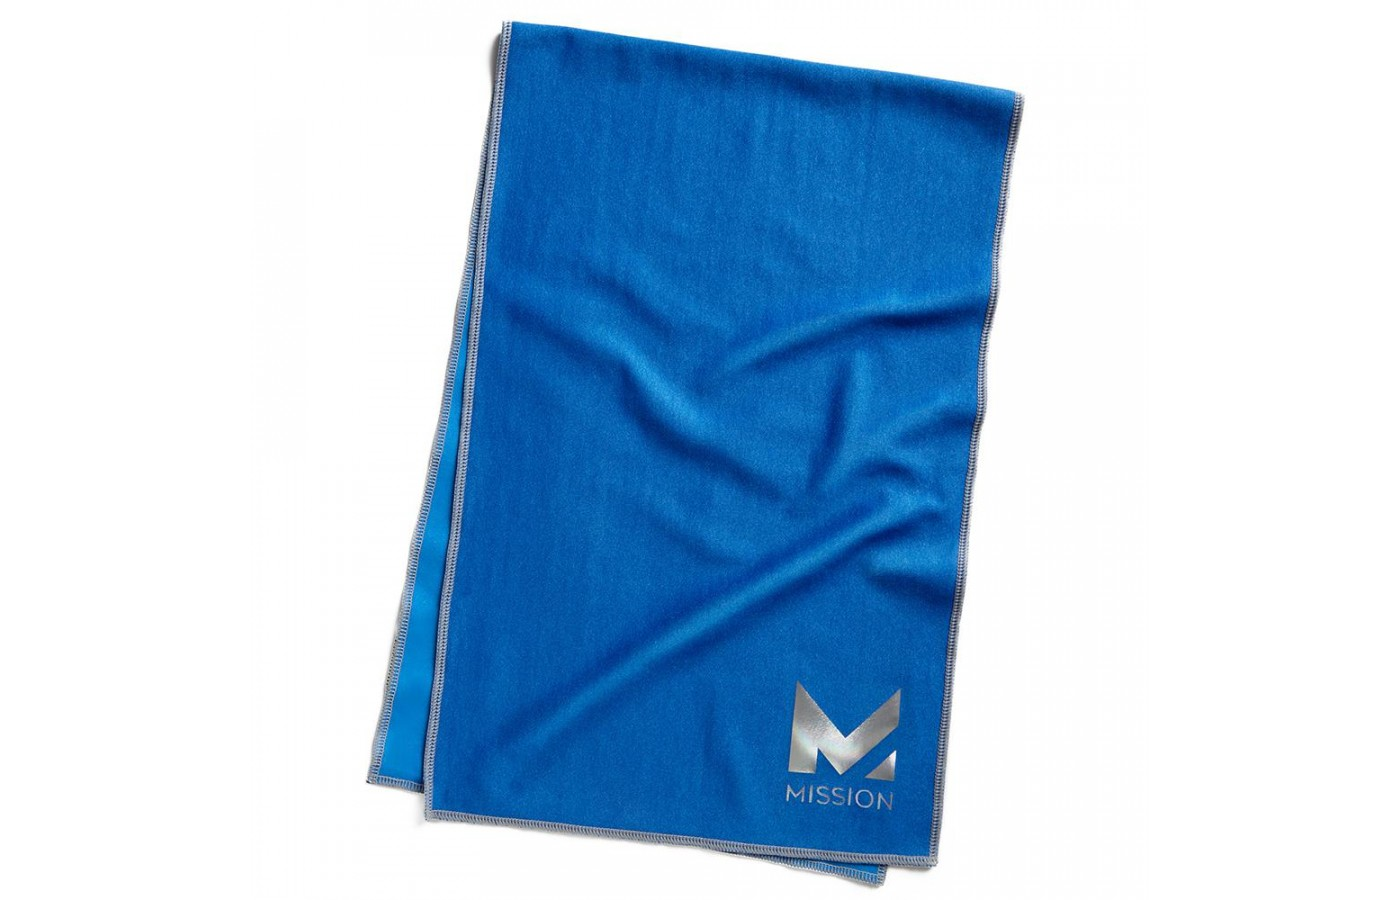 A basic blue Mission HydroActive Max cooling towel.